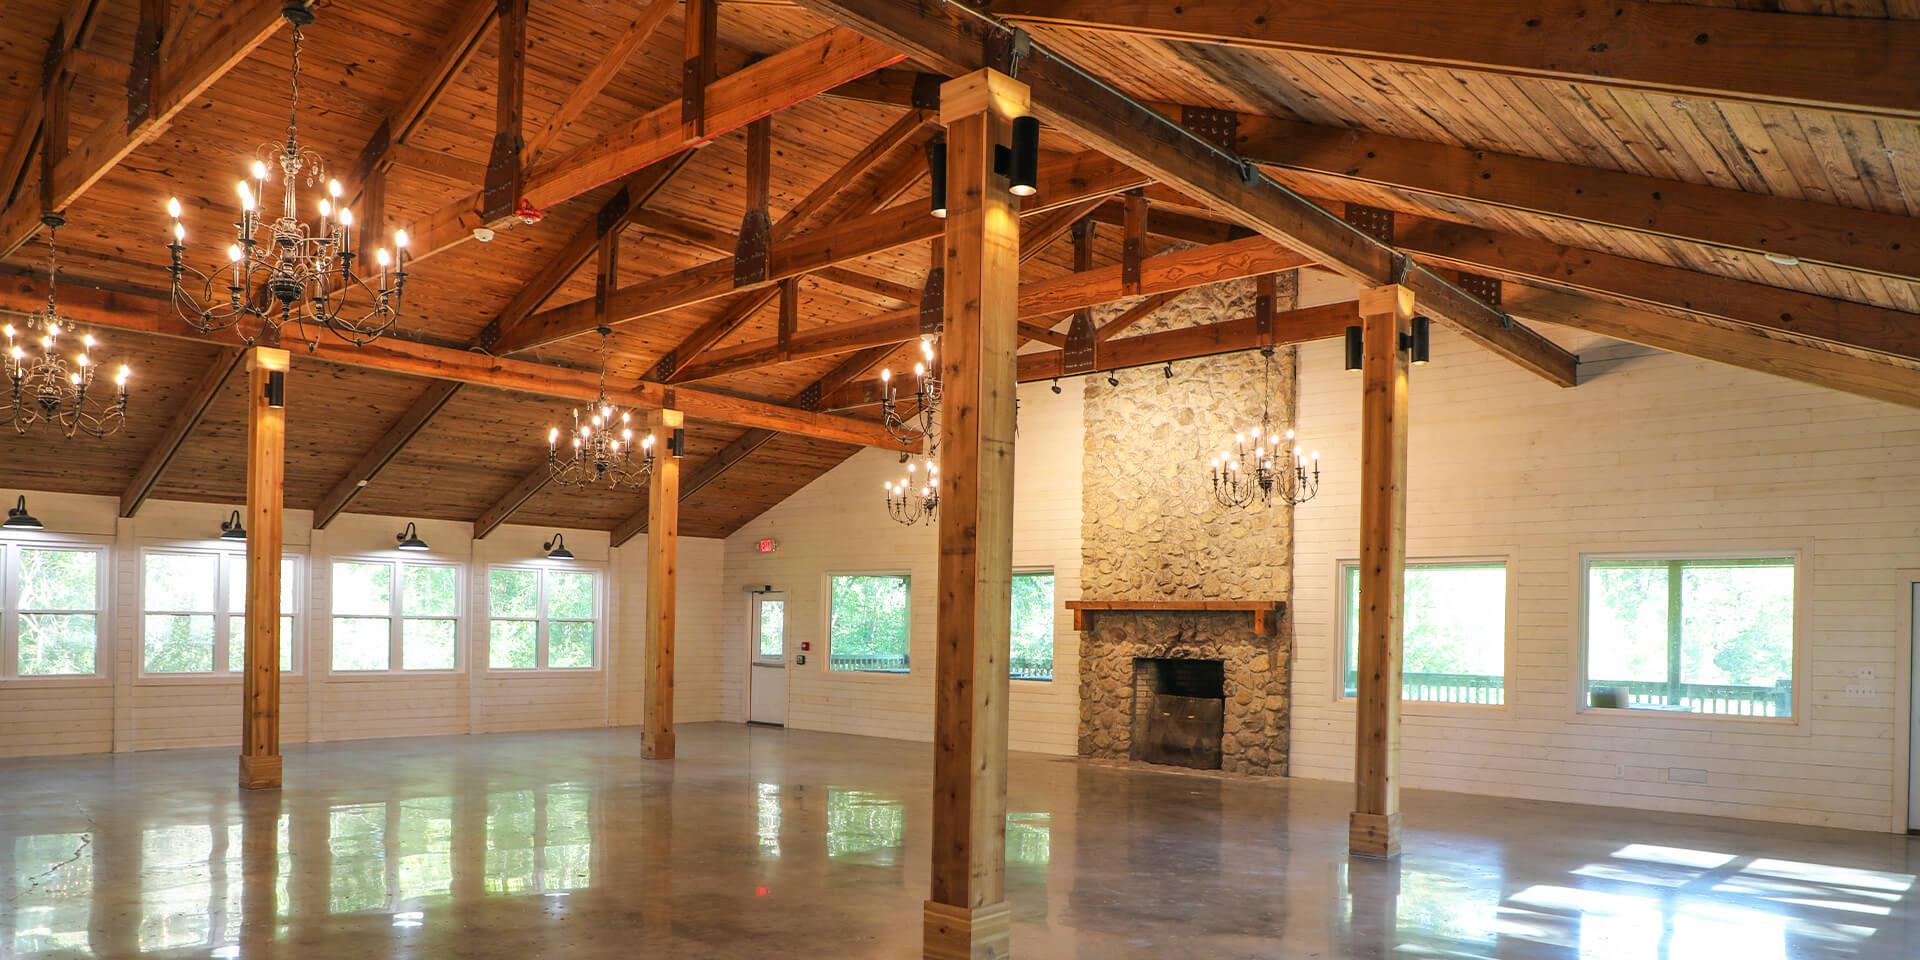 Wide shot of the spacious Sherlock Springs Lodge, showcasing the charismatic Pine Ceiling with Rustic Chandeliers